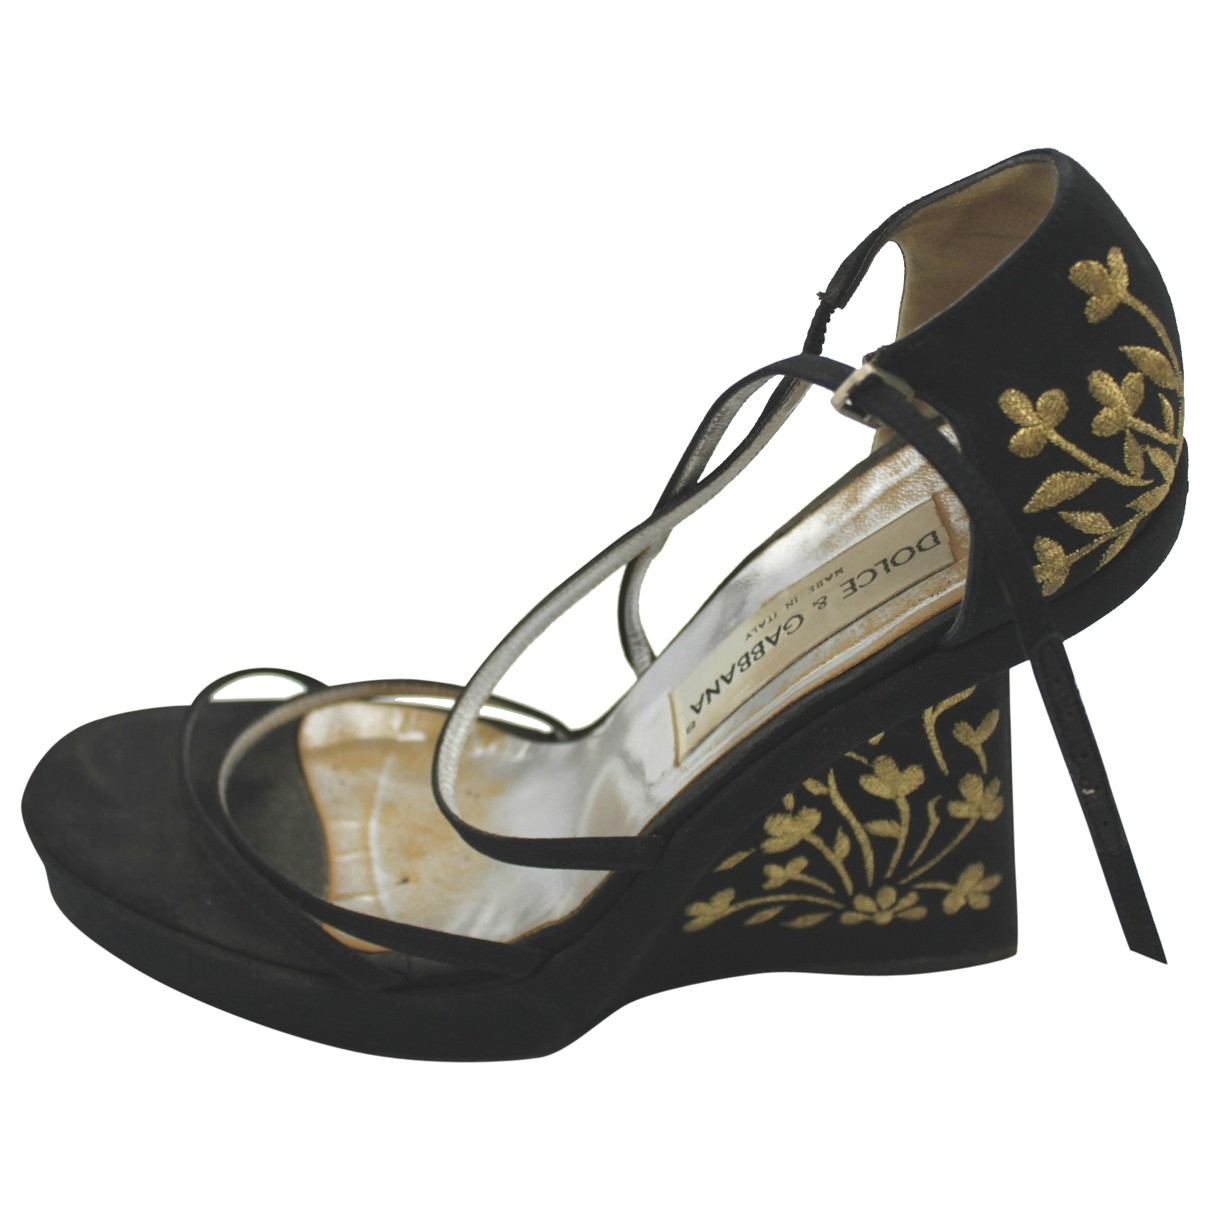 Dolce & Gabbana \N Black Leather Sandals for Women 40 IT